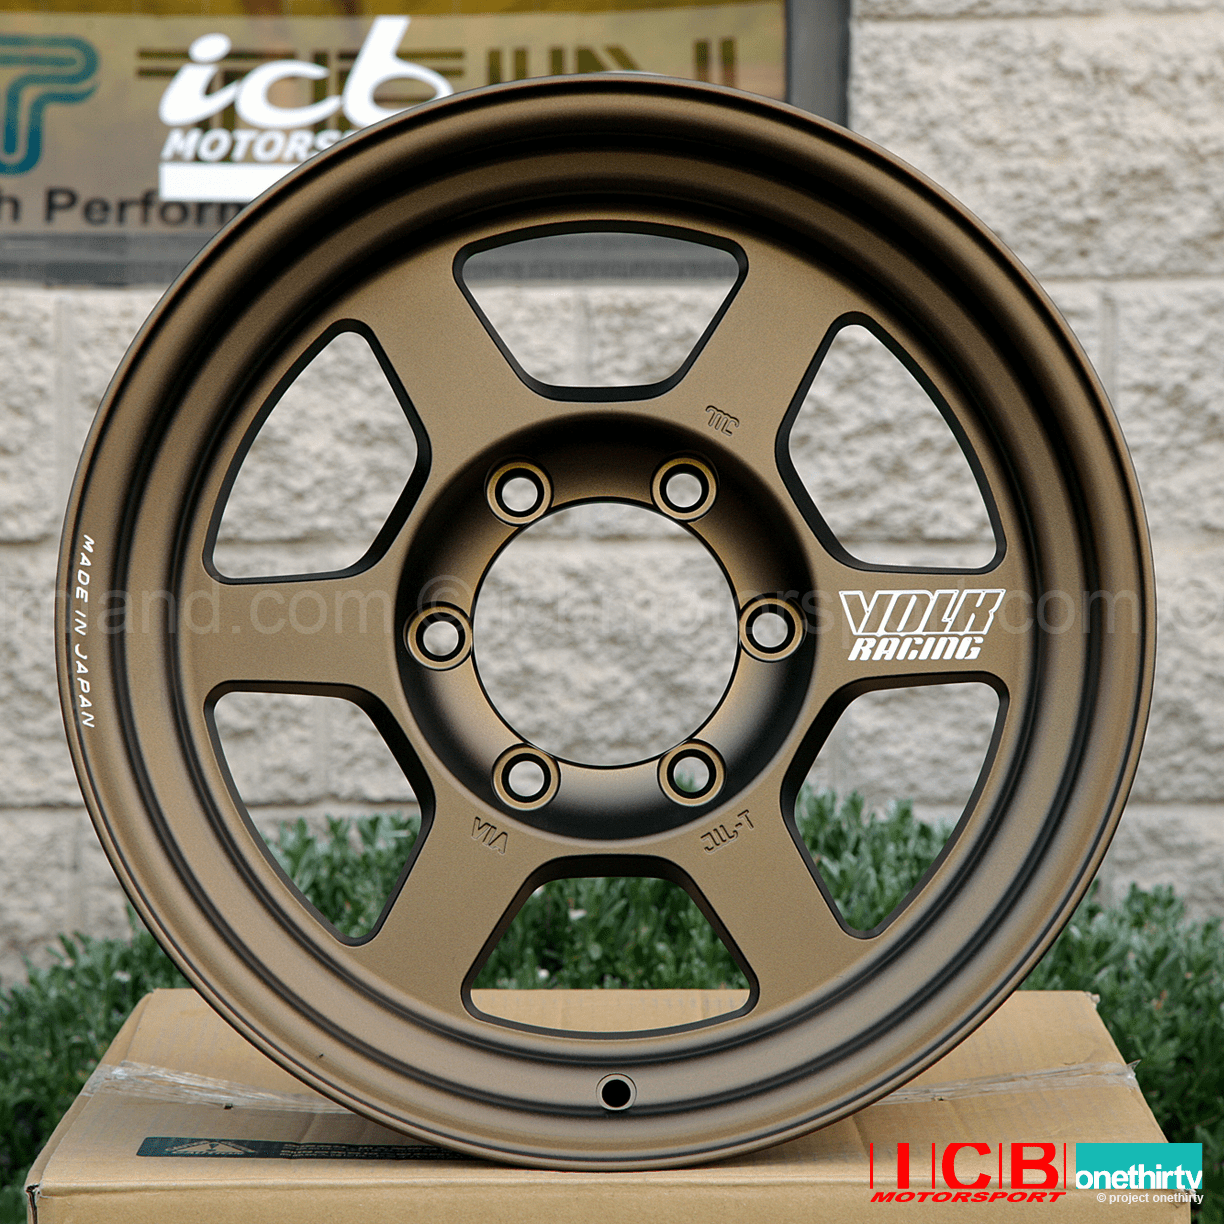 Rays Volk Racing TE37X Wheels 16X8 6X139.7 -20 Offset Bronze Large P.C.D. Progressive Model FREE SHIPPING Pre-Order